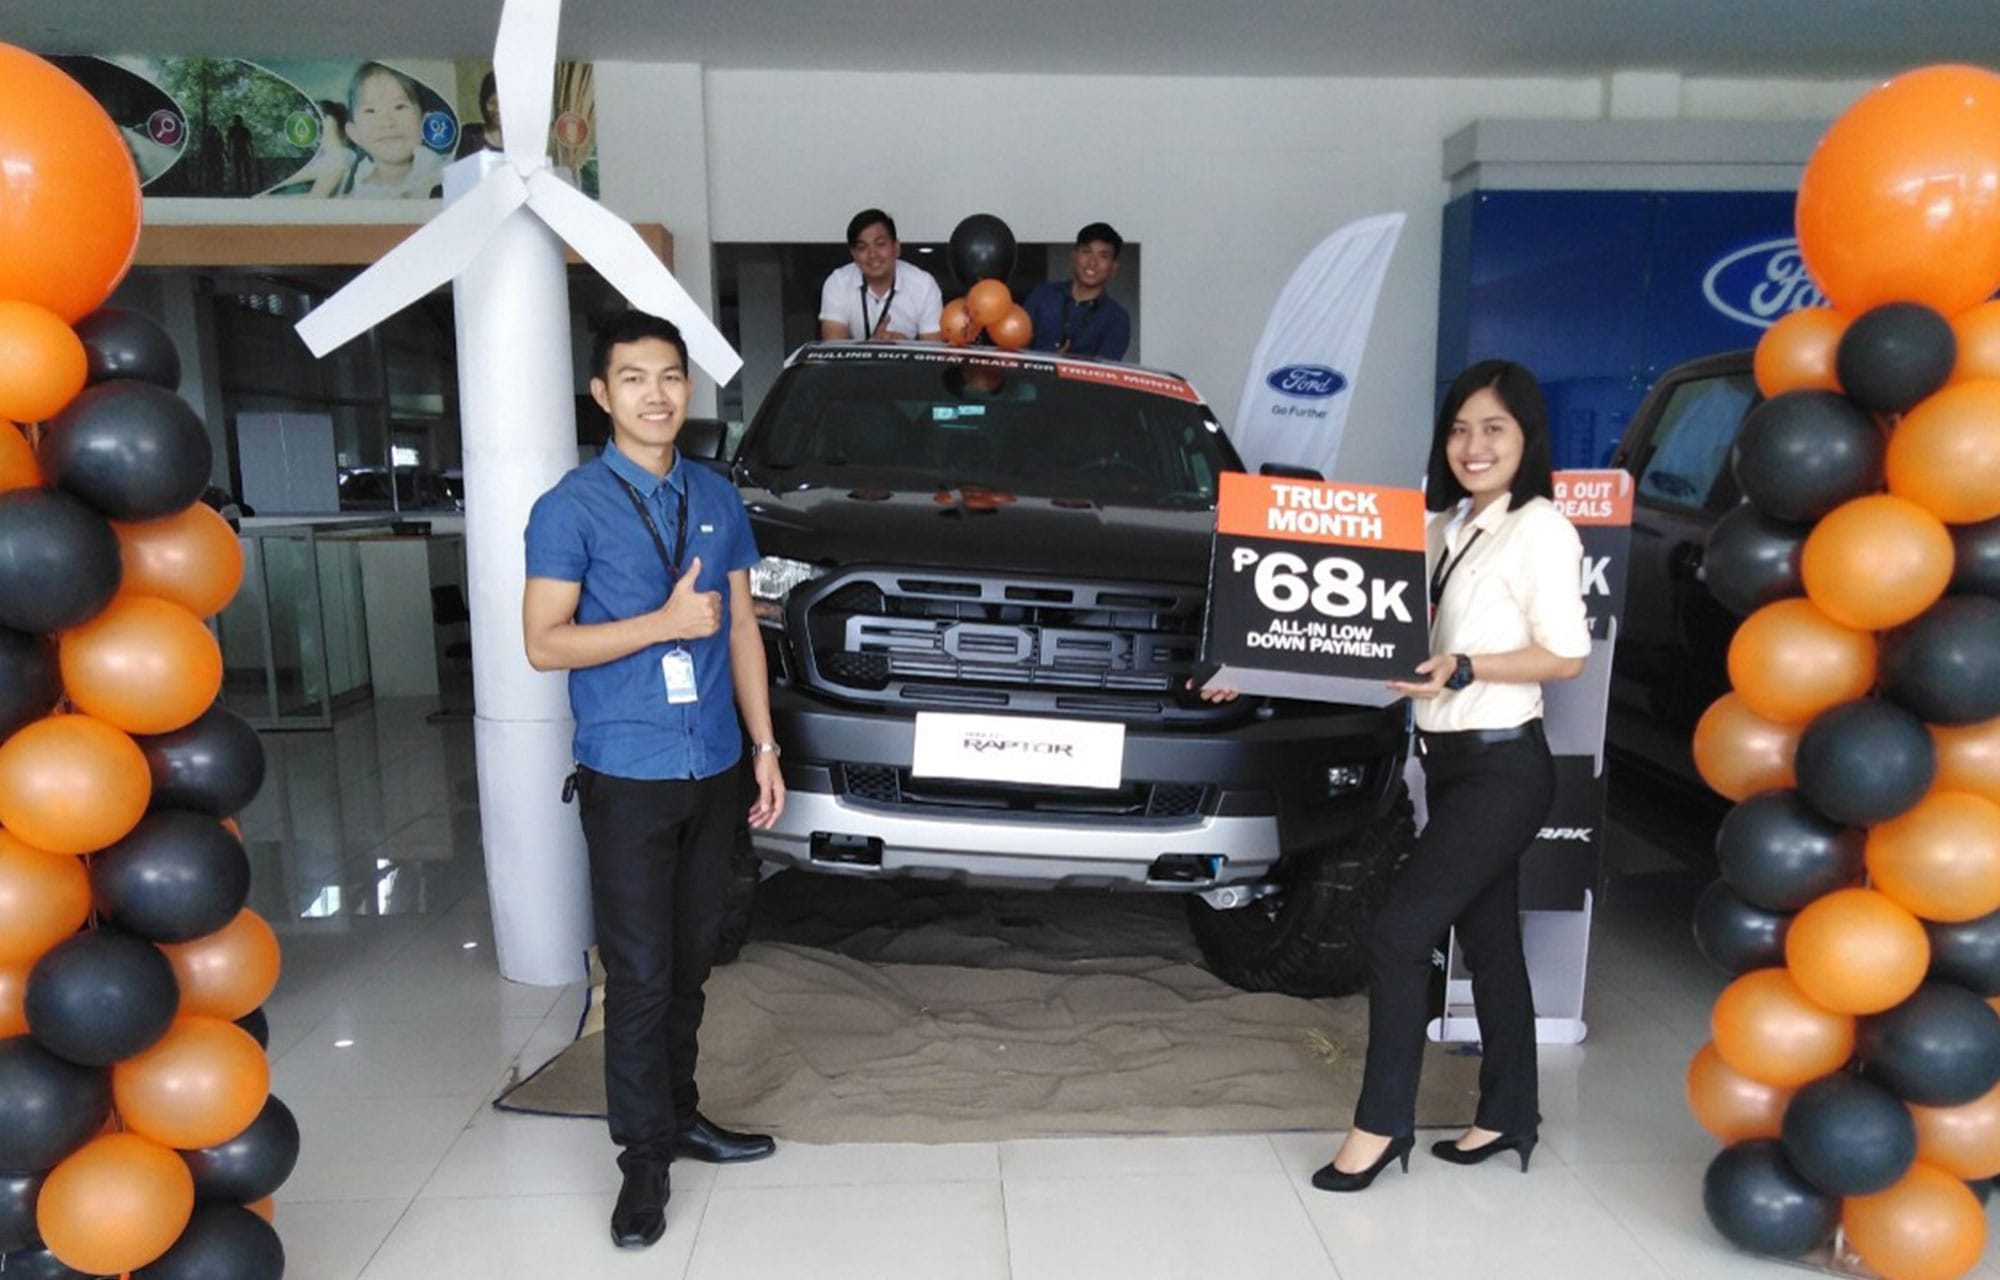 ford ilocos norte windmills theme for the ford truck month event